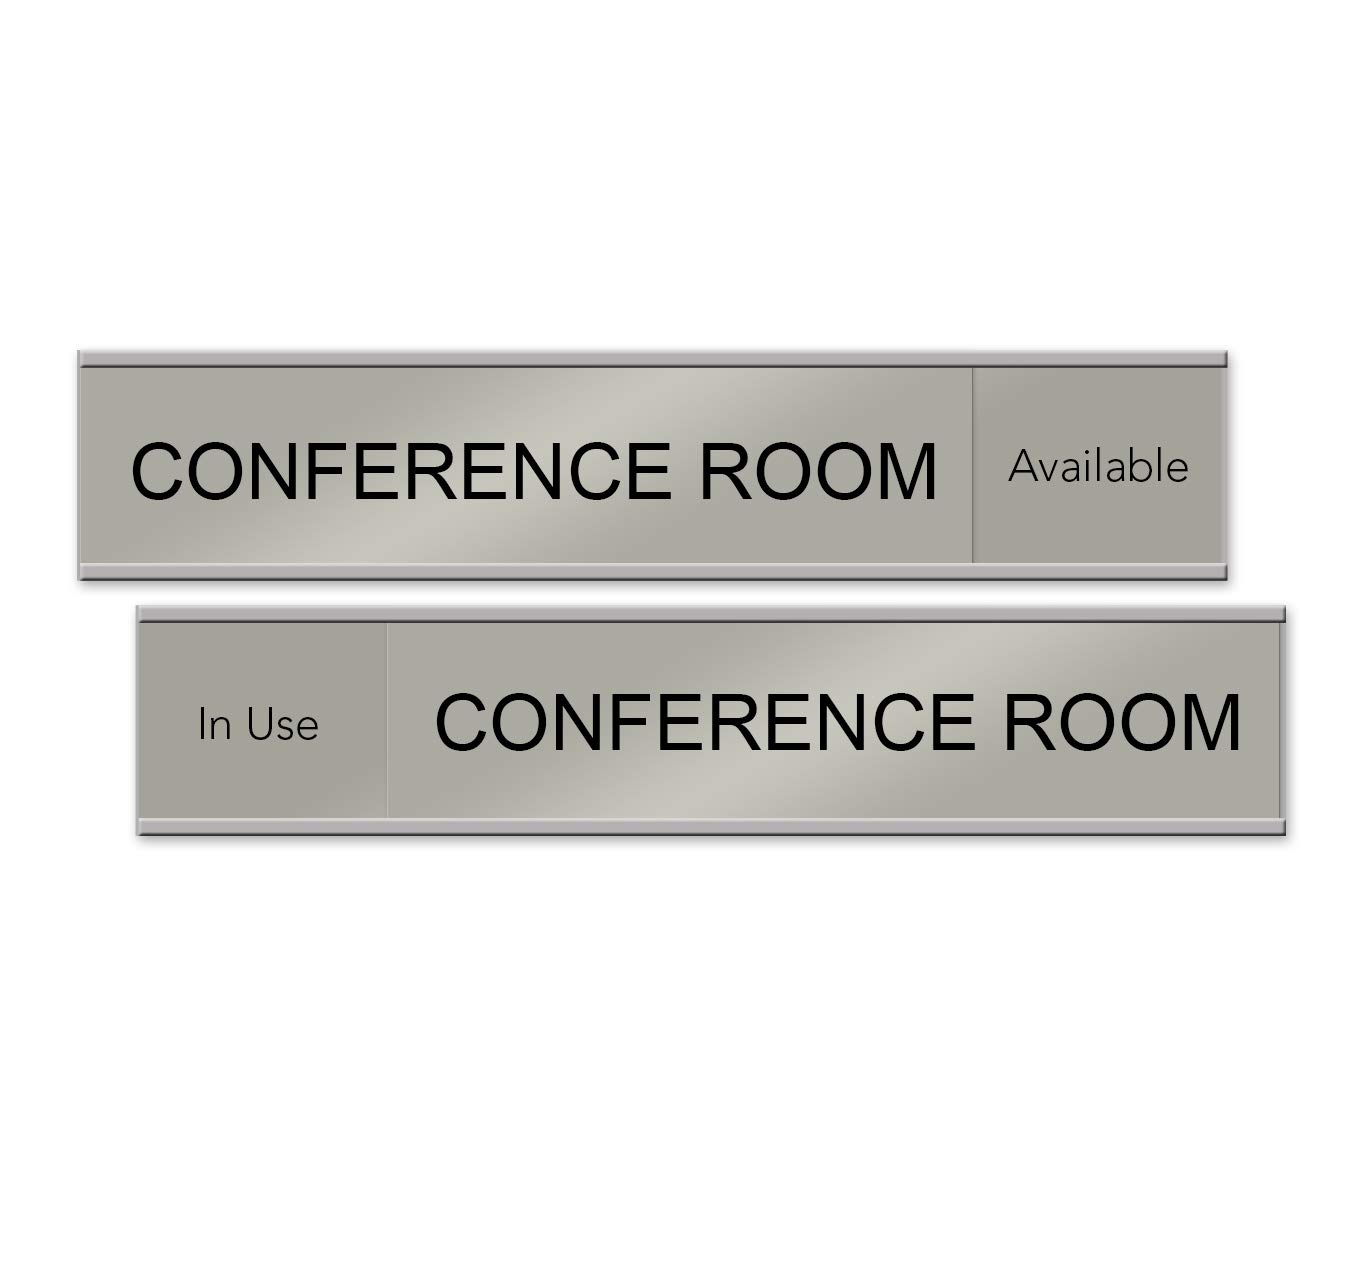 Quality Satin-Aluminum Conference Room Slider Signs - 10 x 2 - Made in The USA (Silver) by NapTags